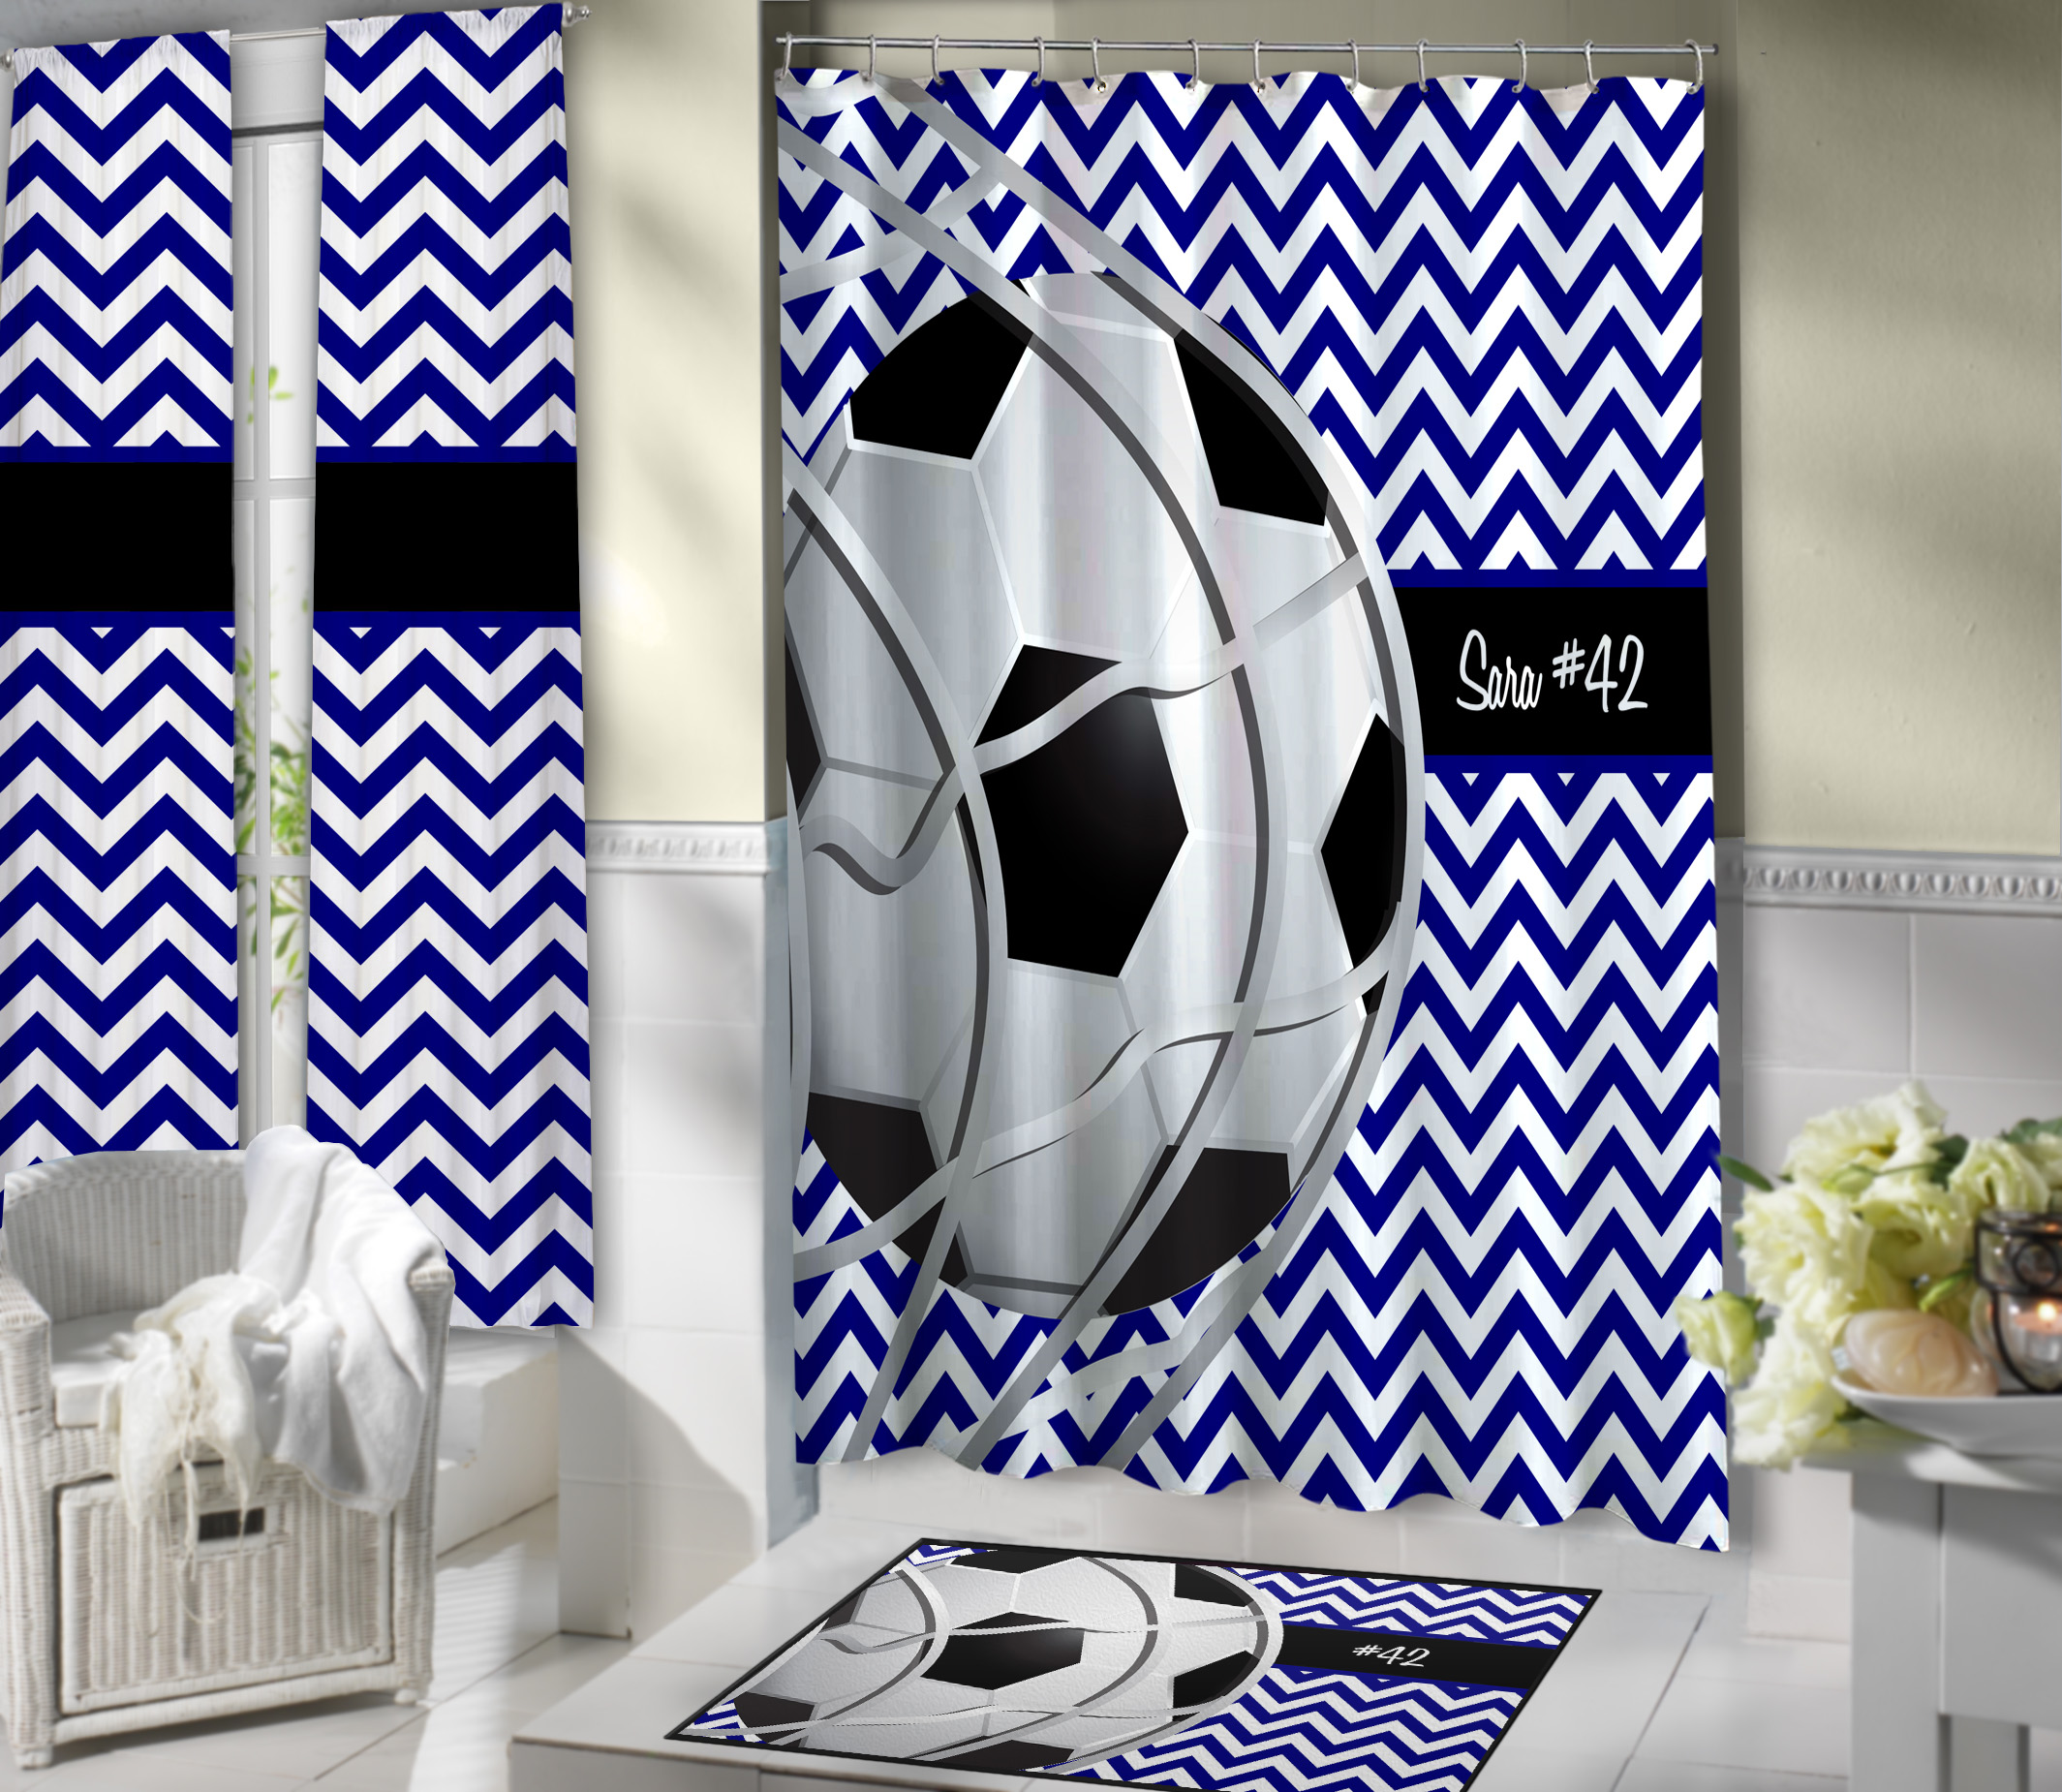 Blue And White Soccer Shower Curtain Kids Sports Theme